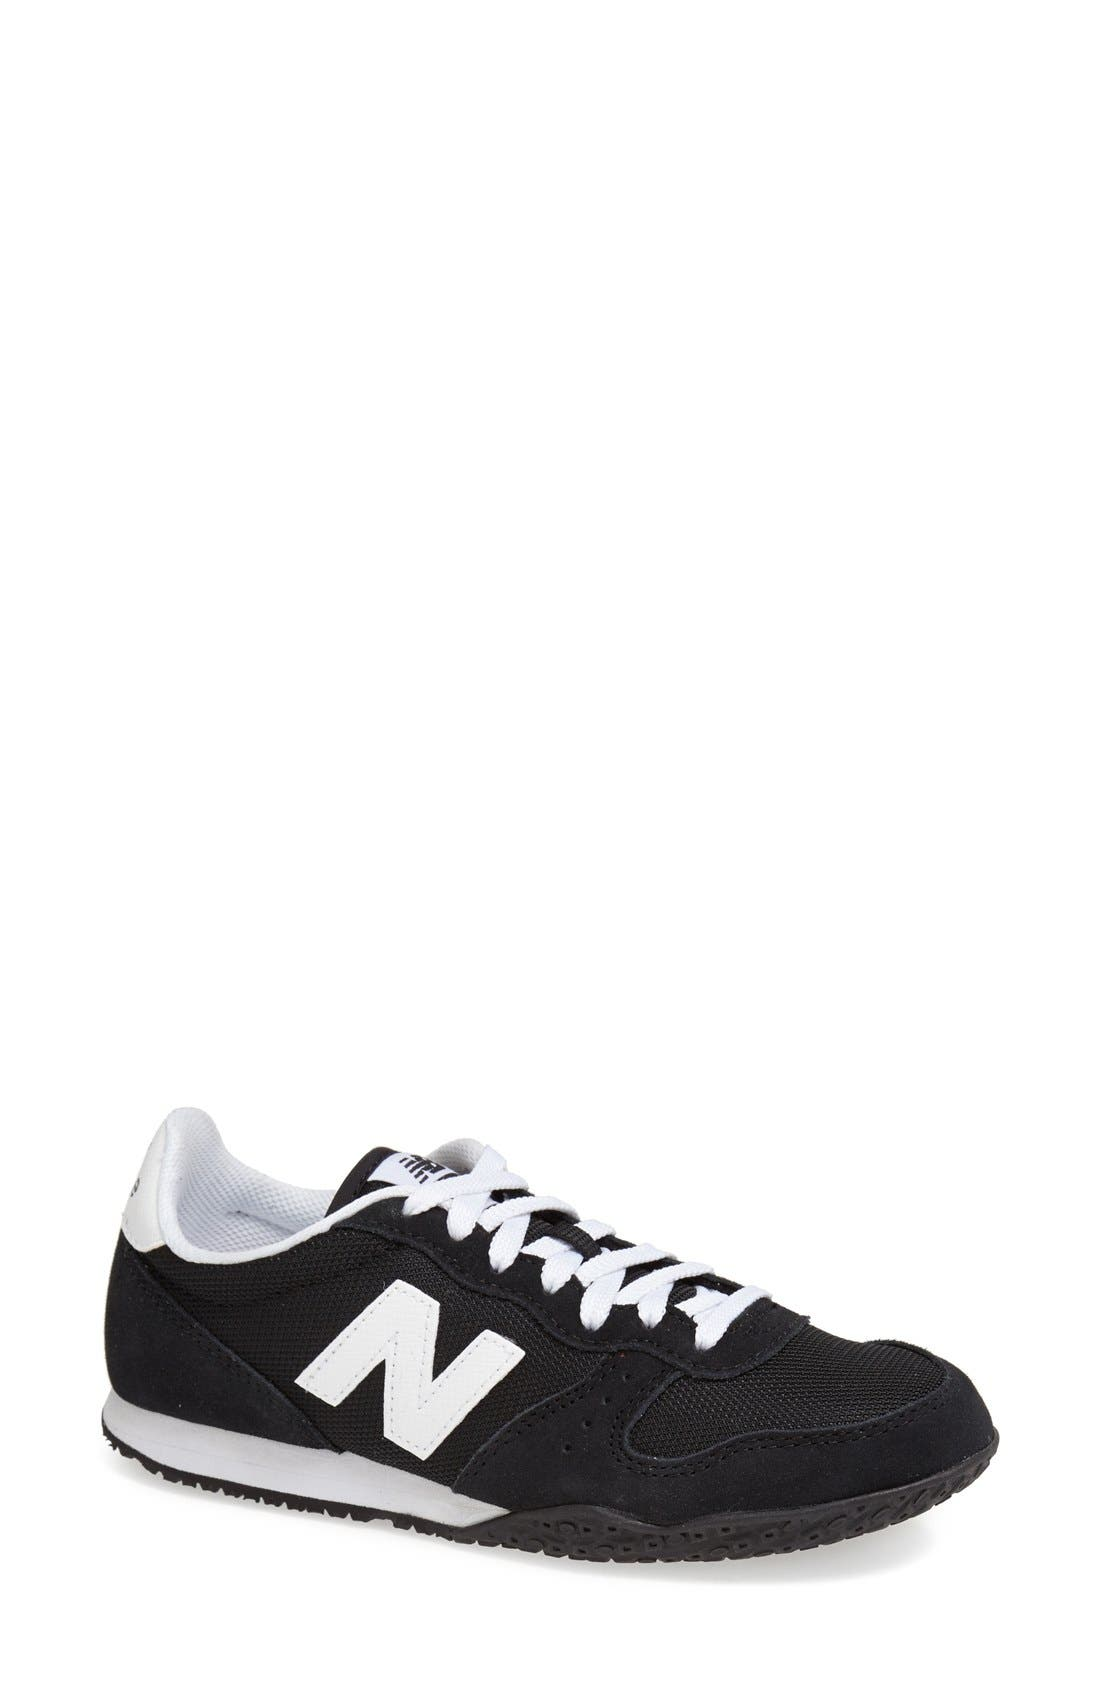 Alternate Image 1 Selected - New Balance 'Lo Pro' Sneaker (Women)